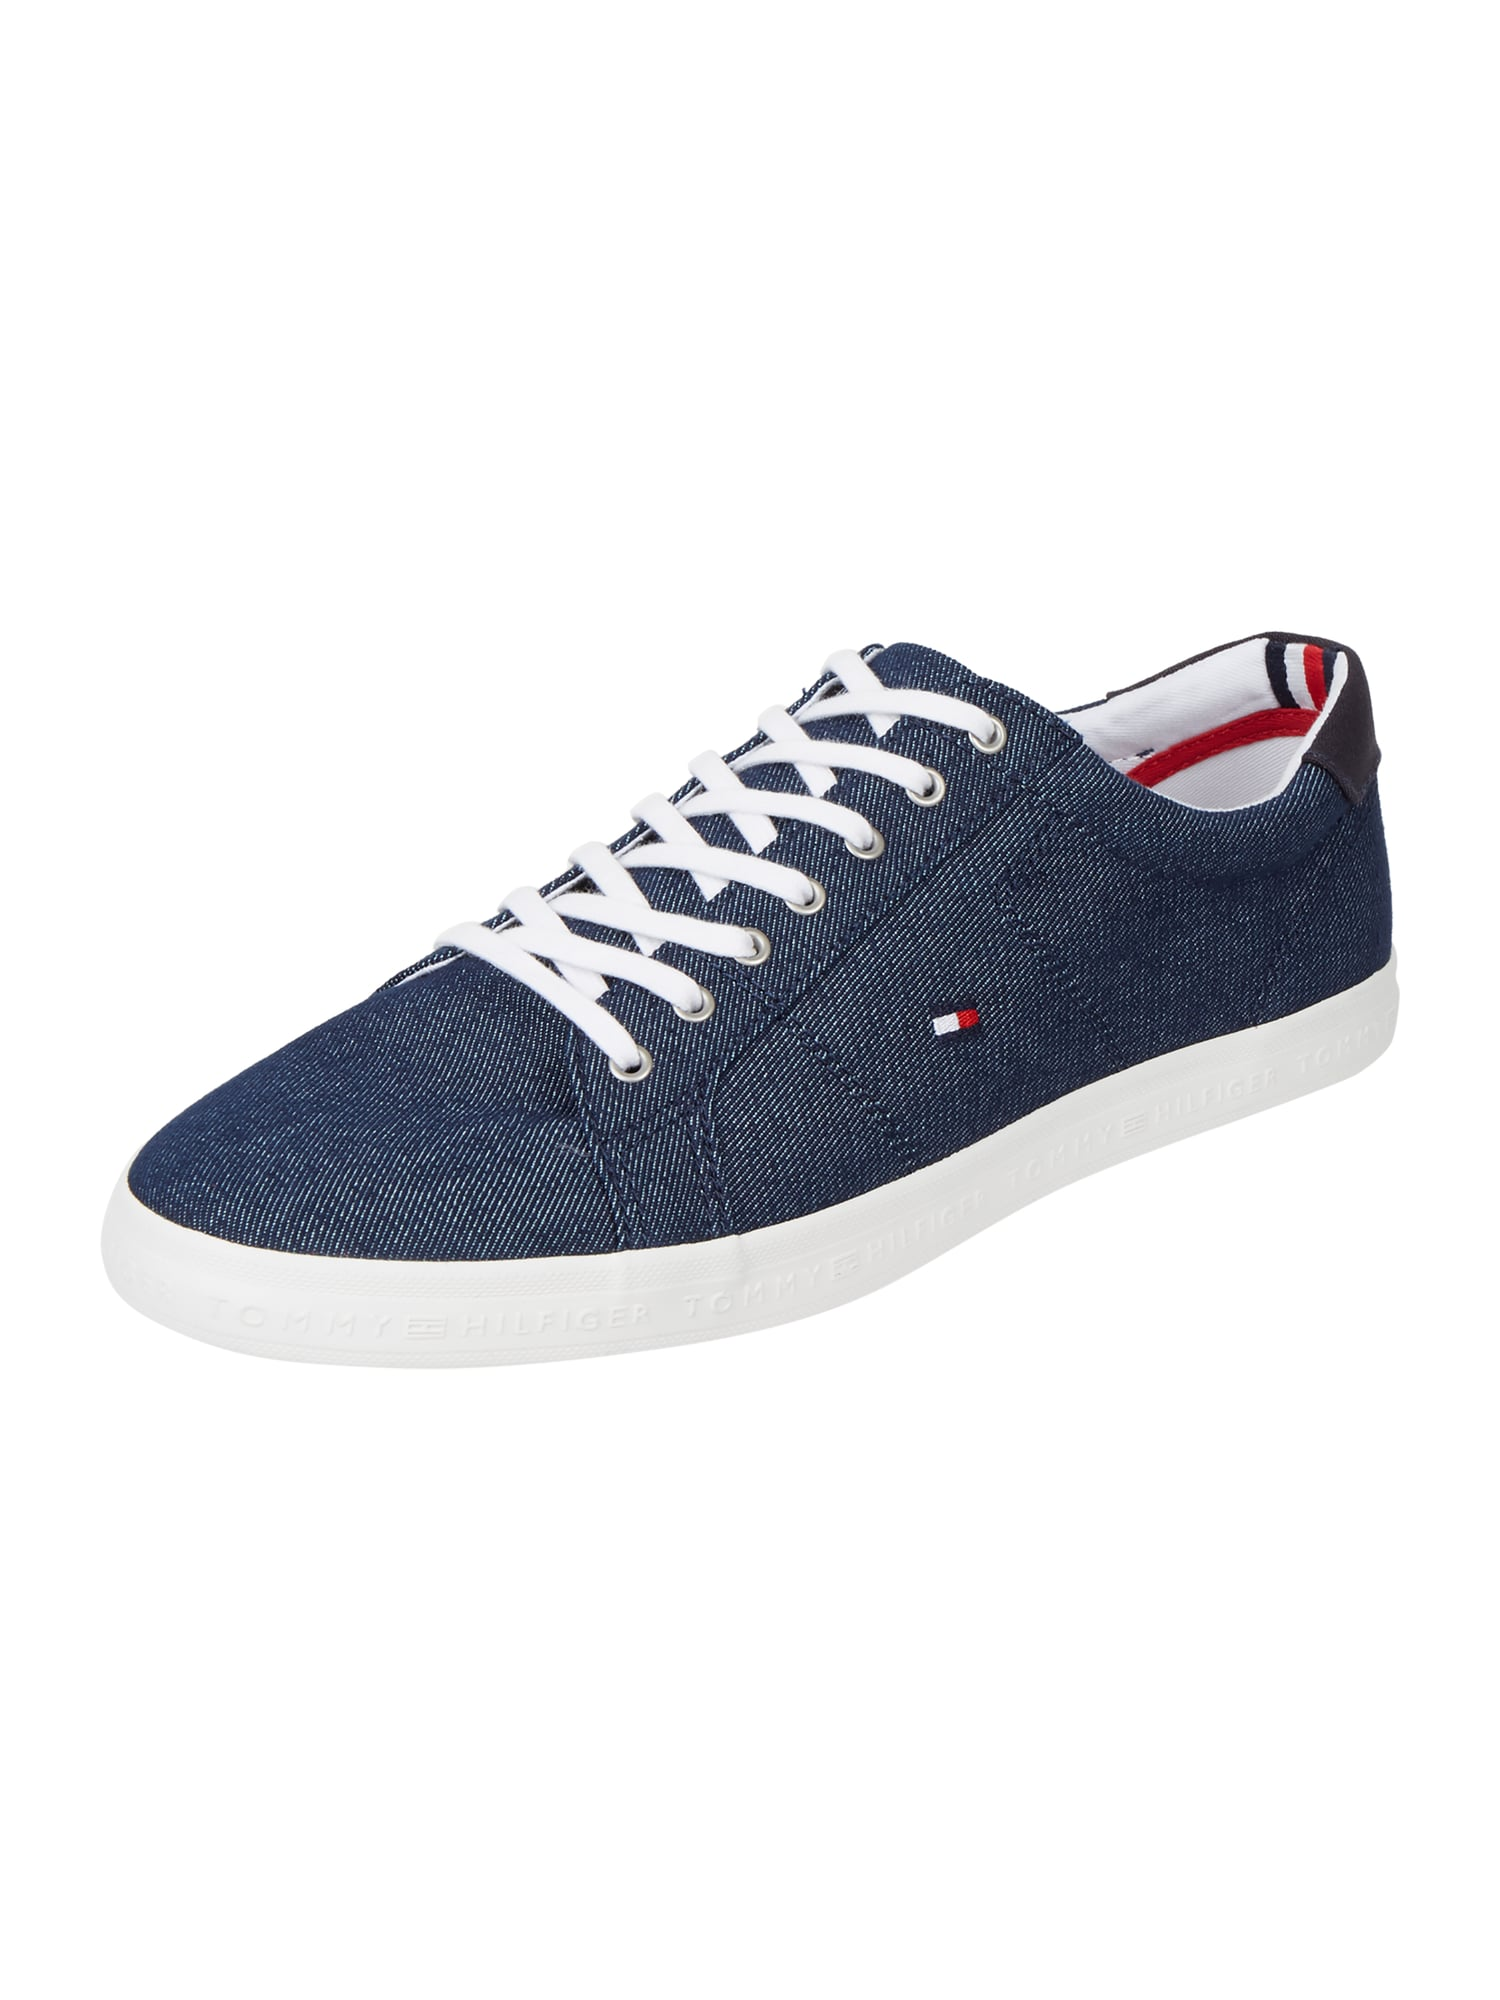 tommy hilfiger sneaker aus canvas in denimoptik in blau. Black Bedroom Furniture Sets. Home Design Ideas